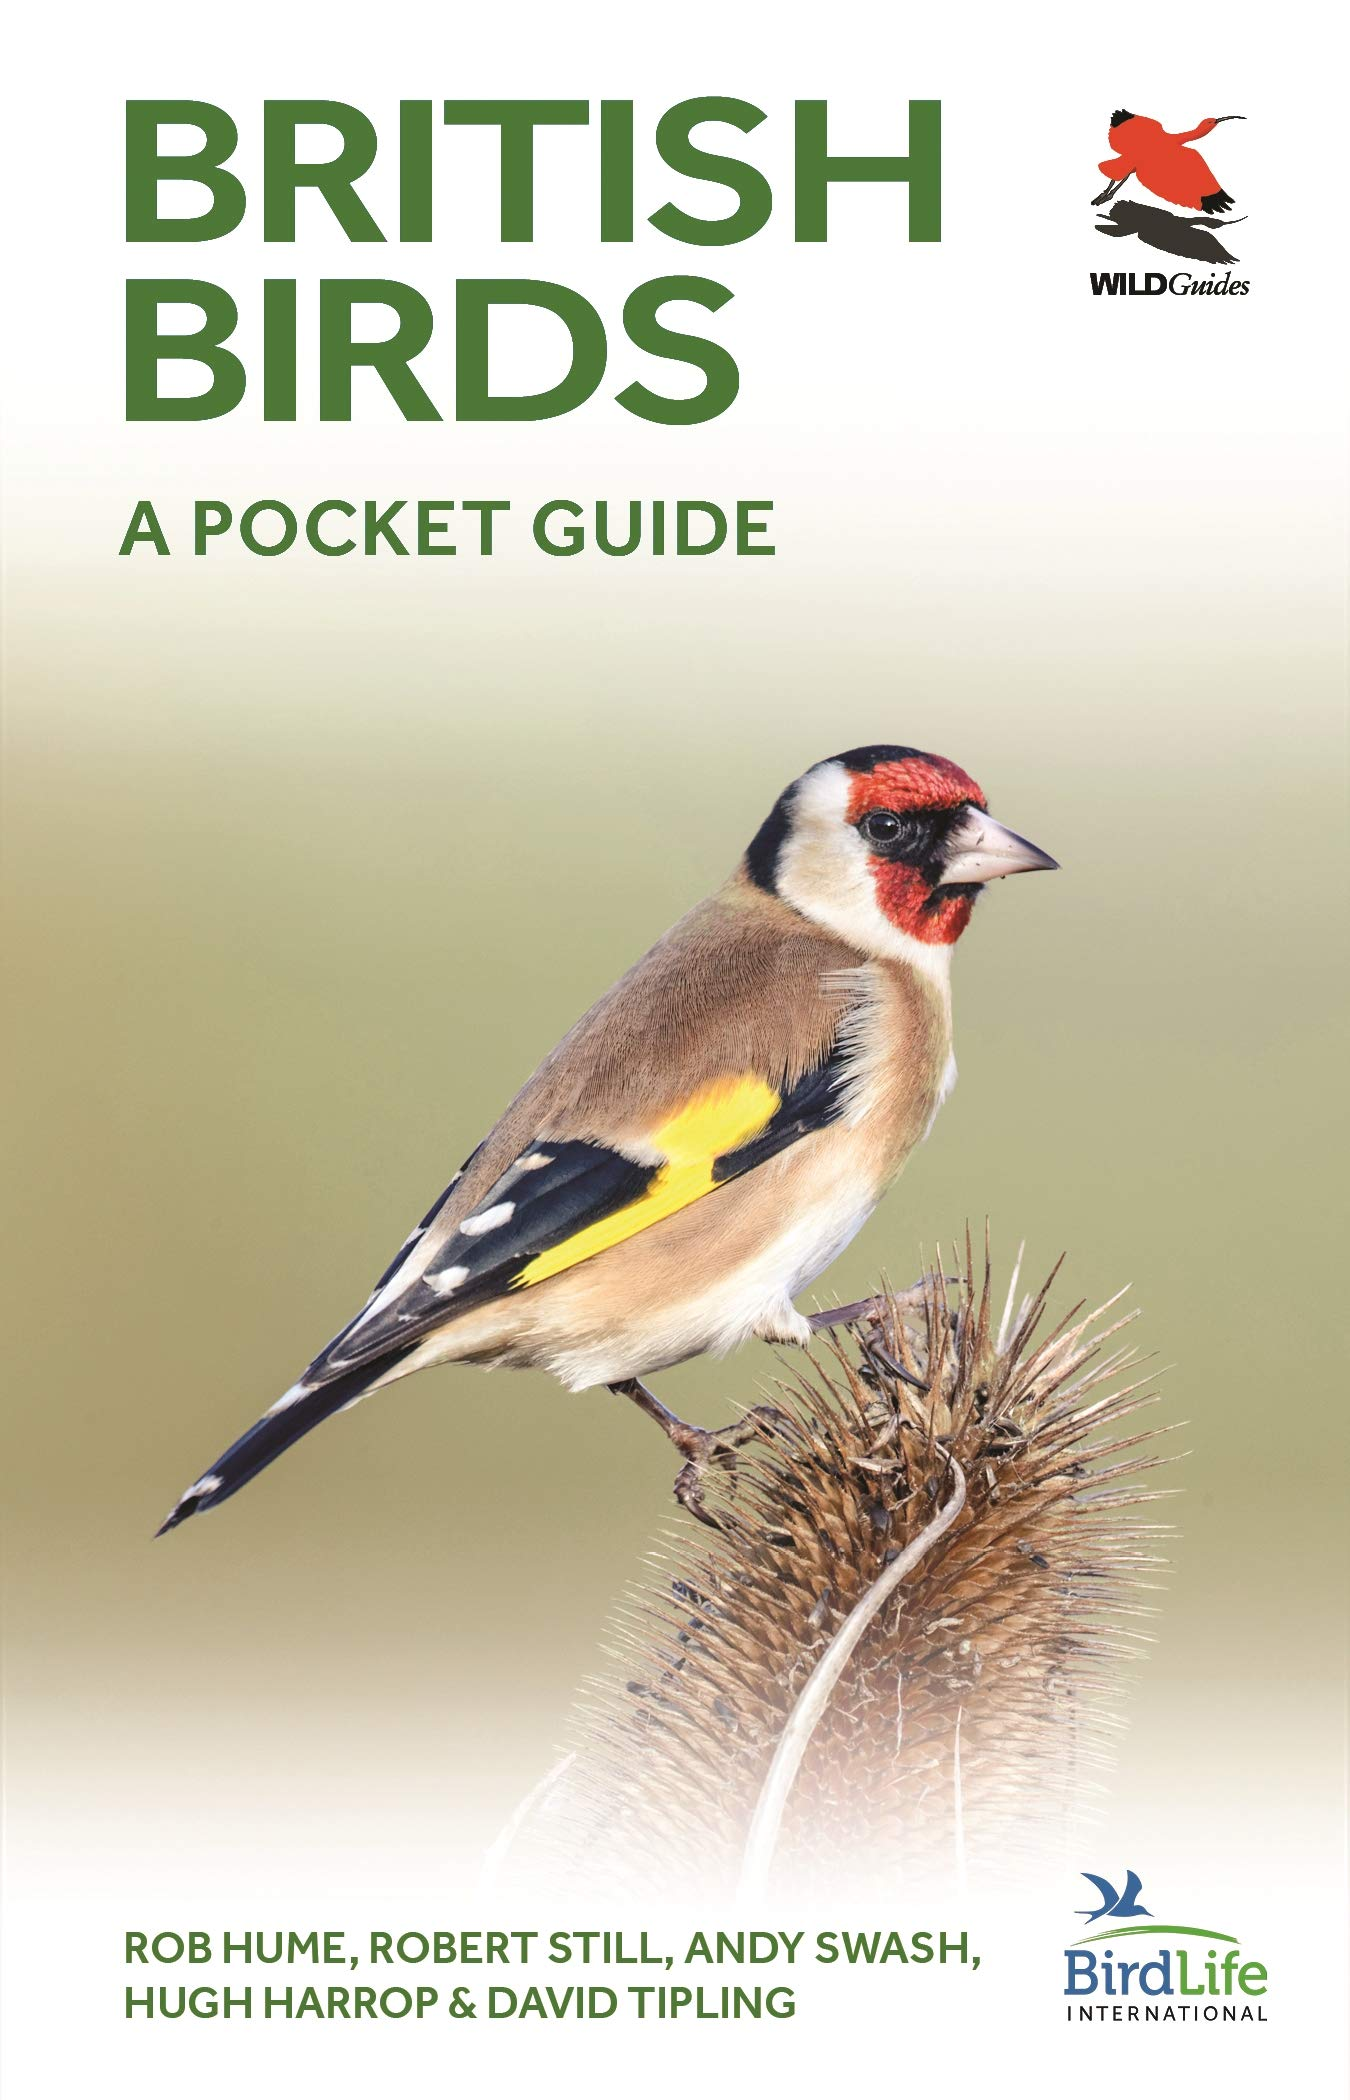 British Birds: A Pocket Guide (WILDGuides) (Britain's Wildlife):  Amazon.co.uk: Rob Hume, Robert Still, Andy Swash, Hugh Harrop, David  Tipling: 9780691181677: Books